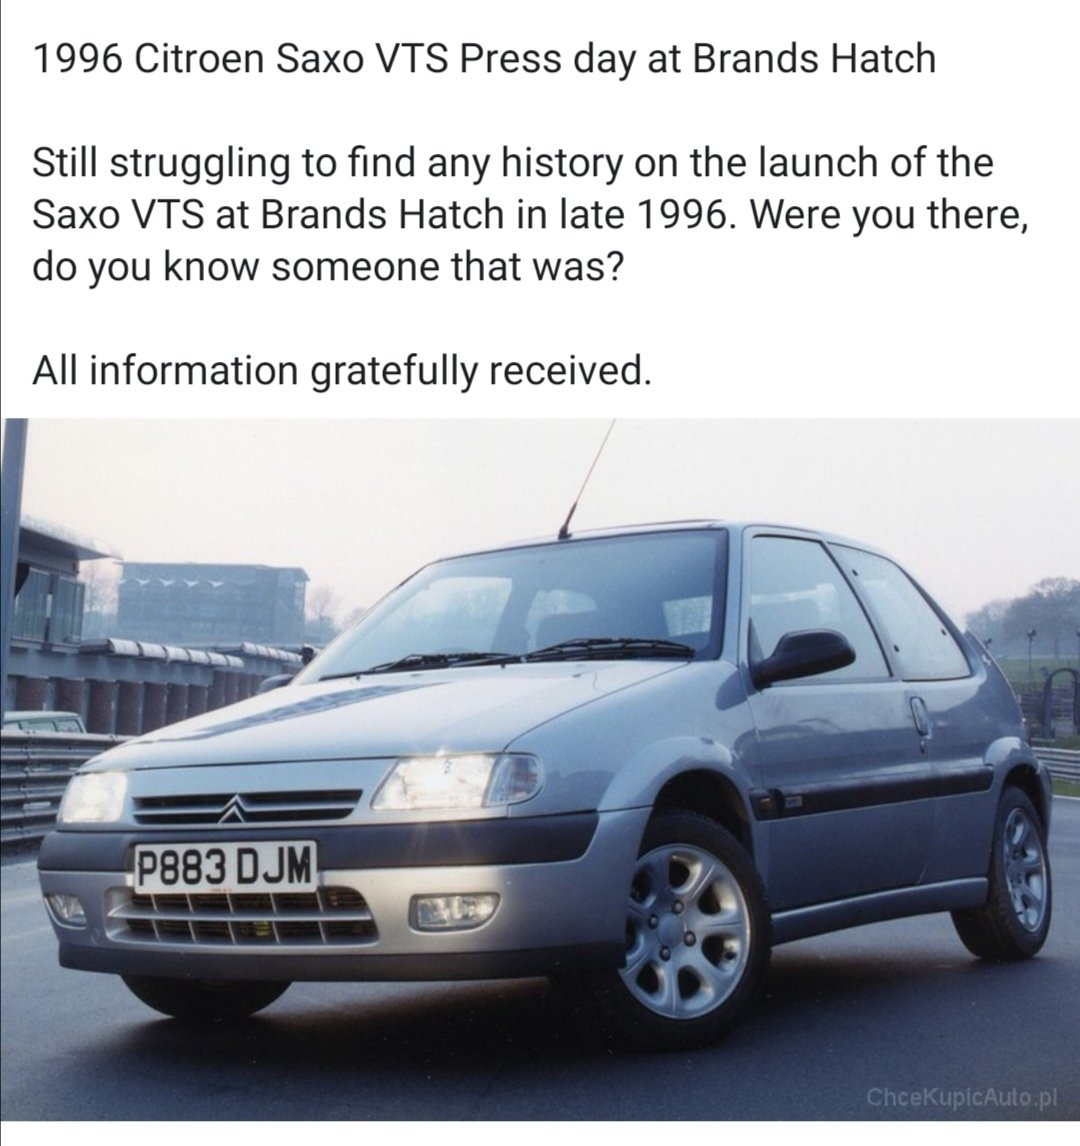 Calling all seasoned motoring journos! Friend I know (Facebook friend, but never met him. Conversed a bit. This isnt really relevant anyway) has asked the following... He now owns the car in the picture. Anyone? @CitroenUK @autocar @CARmagazine #saxovts #brandshatch